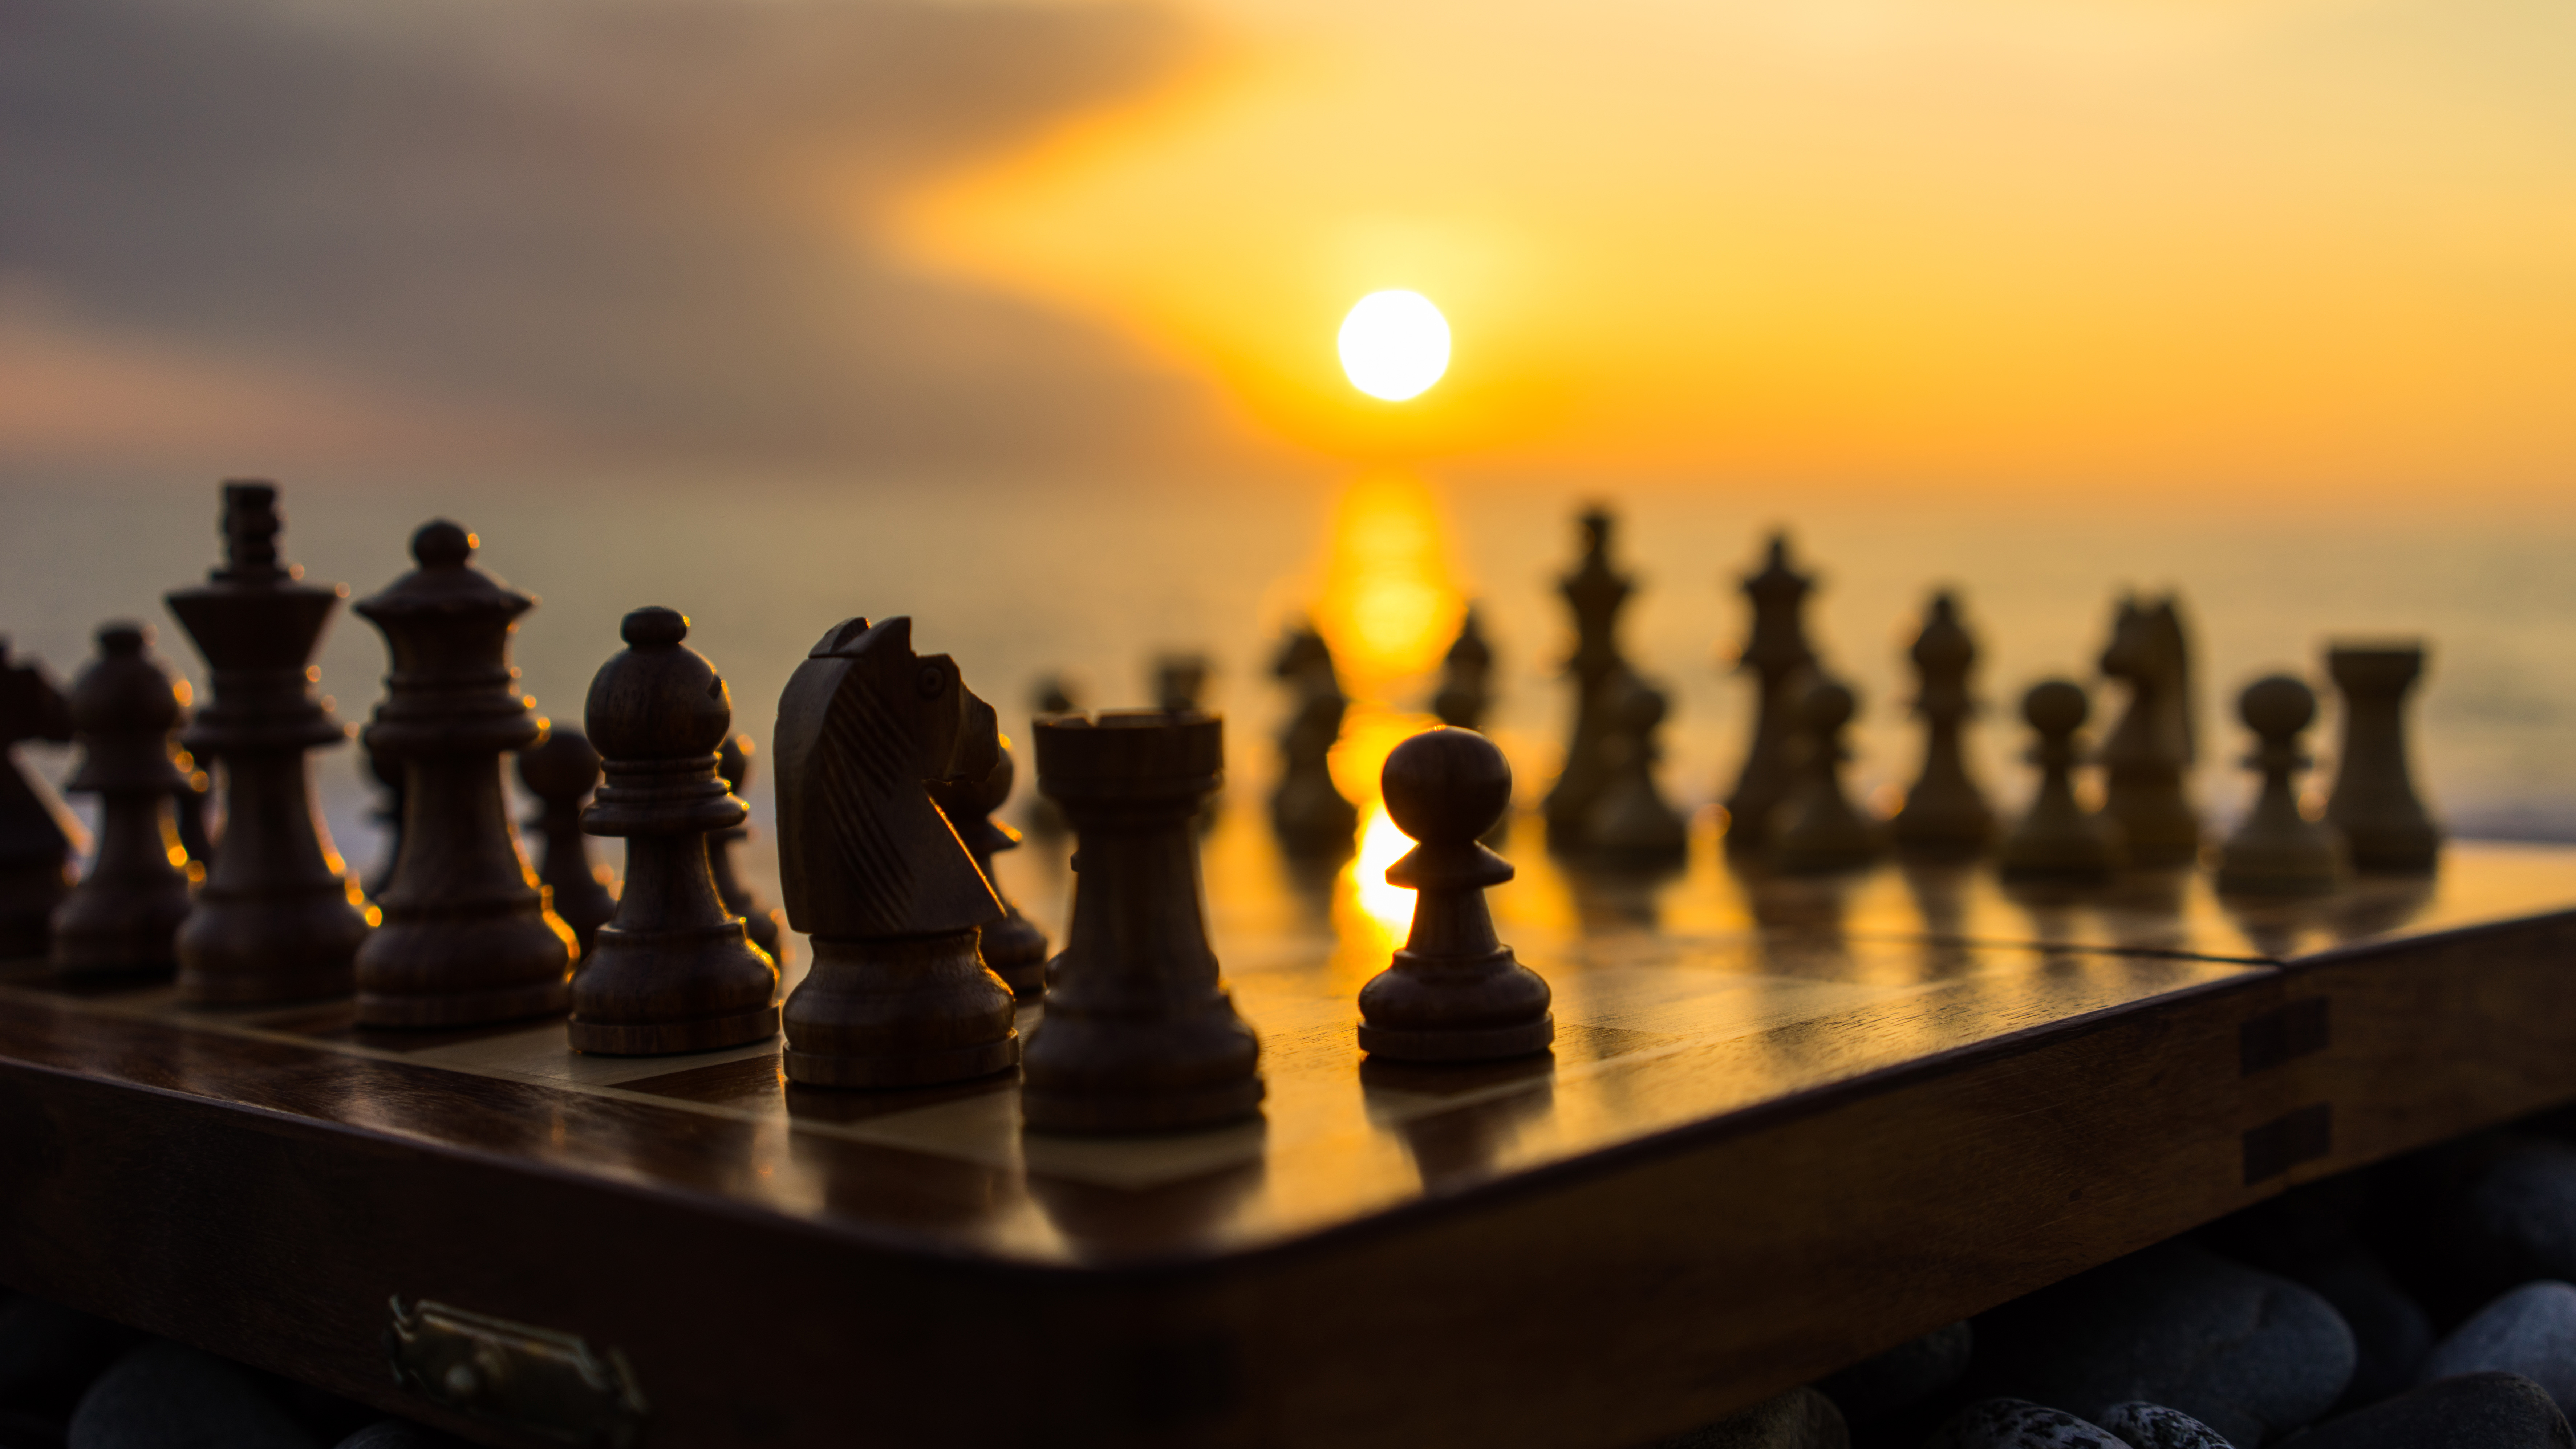 Sports 8k Wallpapers: Chess 8k, HD Sports, 4k Wallpapers, Images, Backgrounds